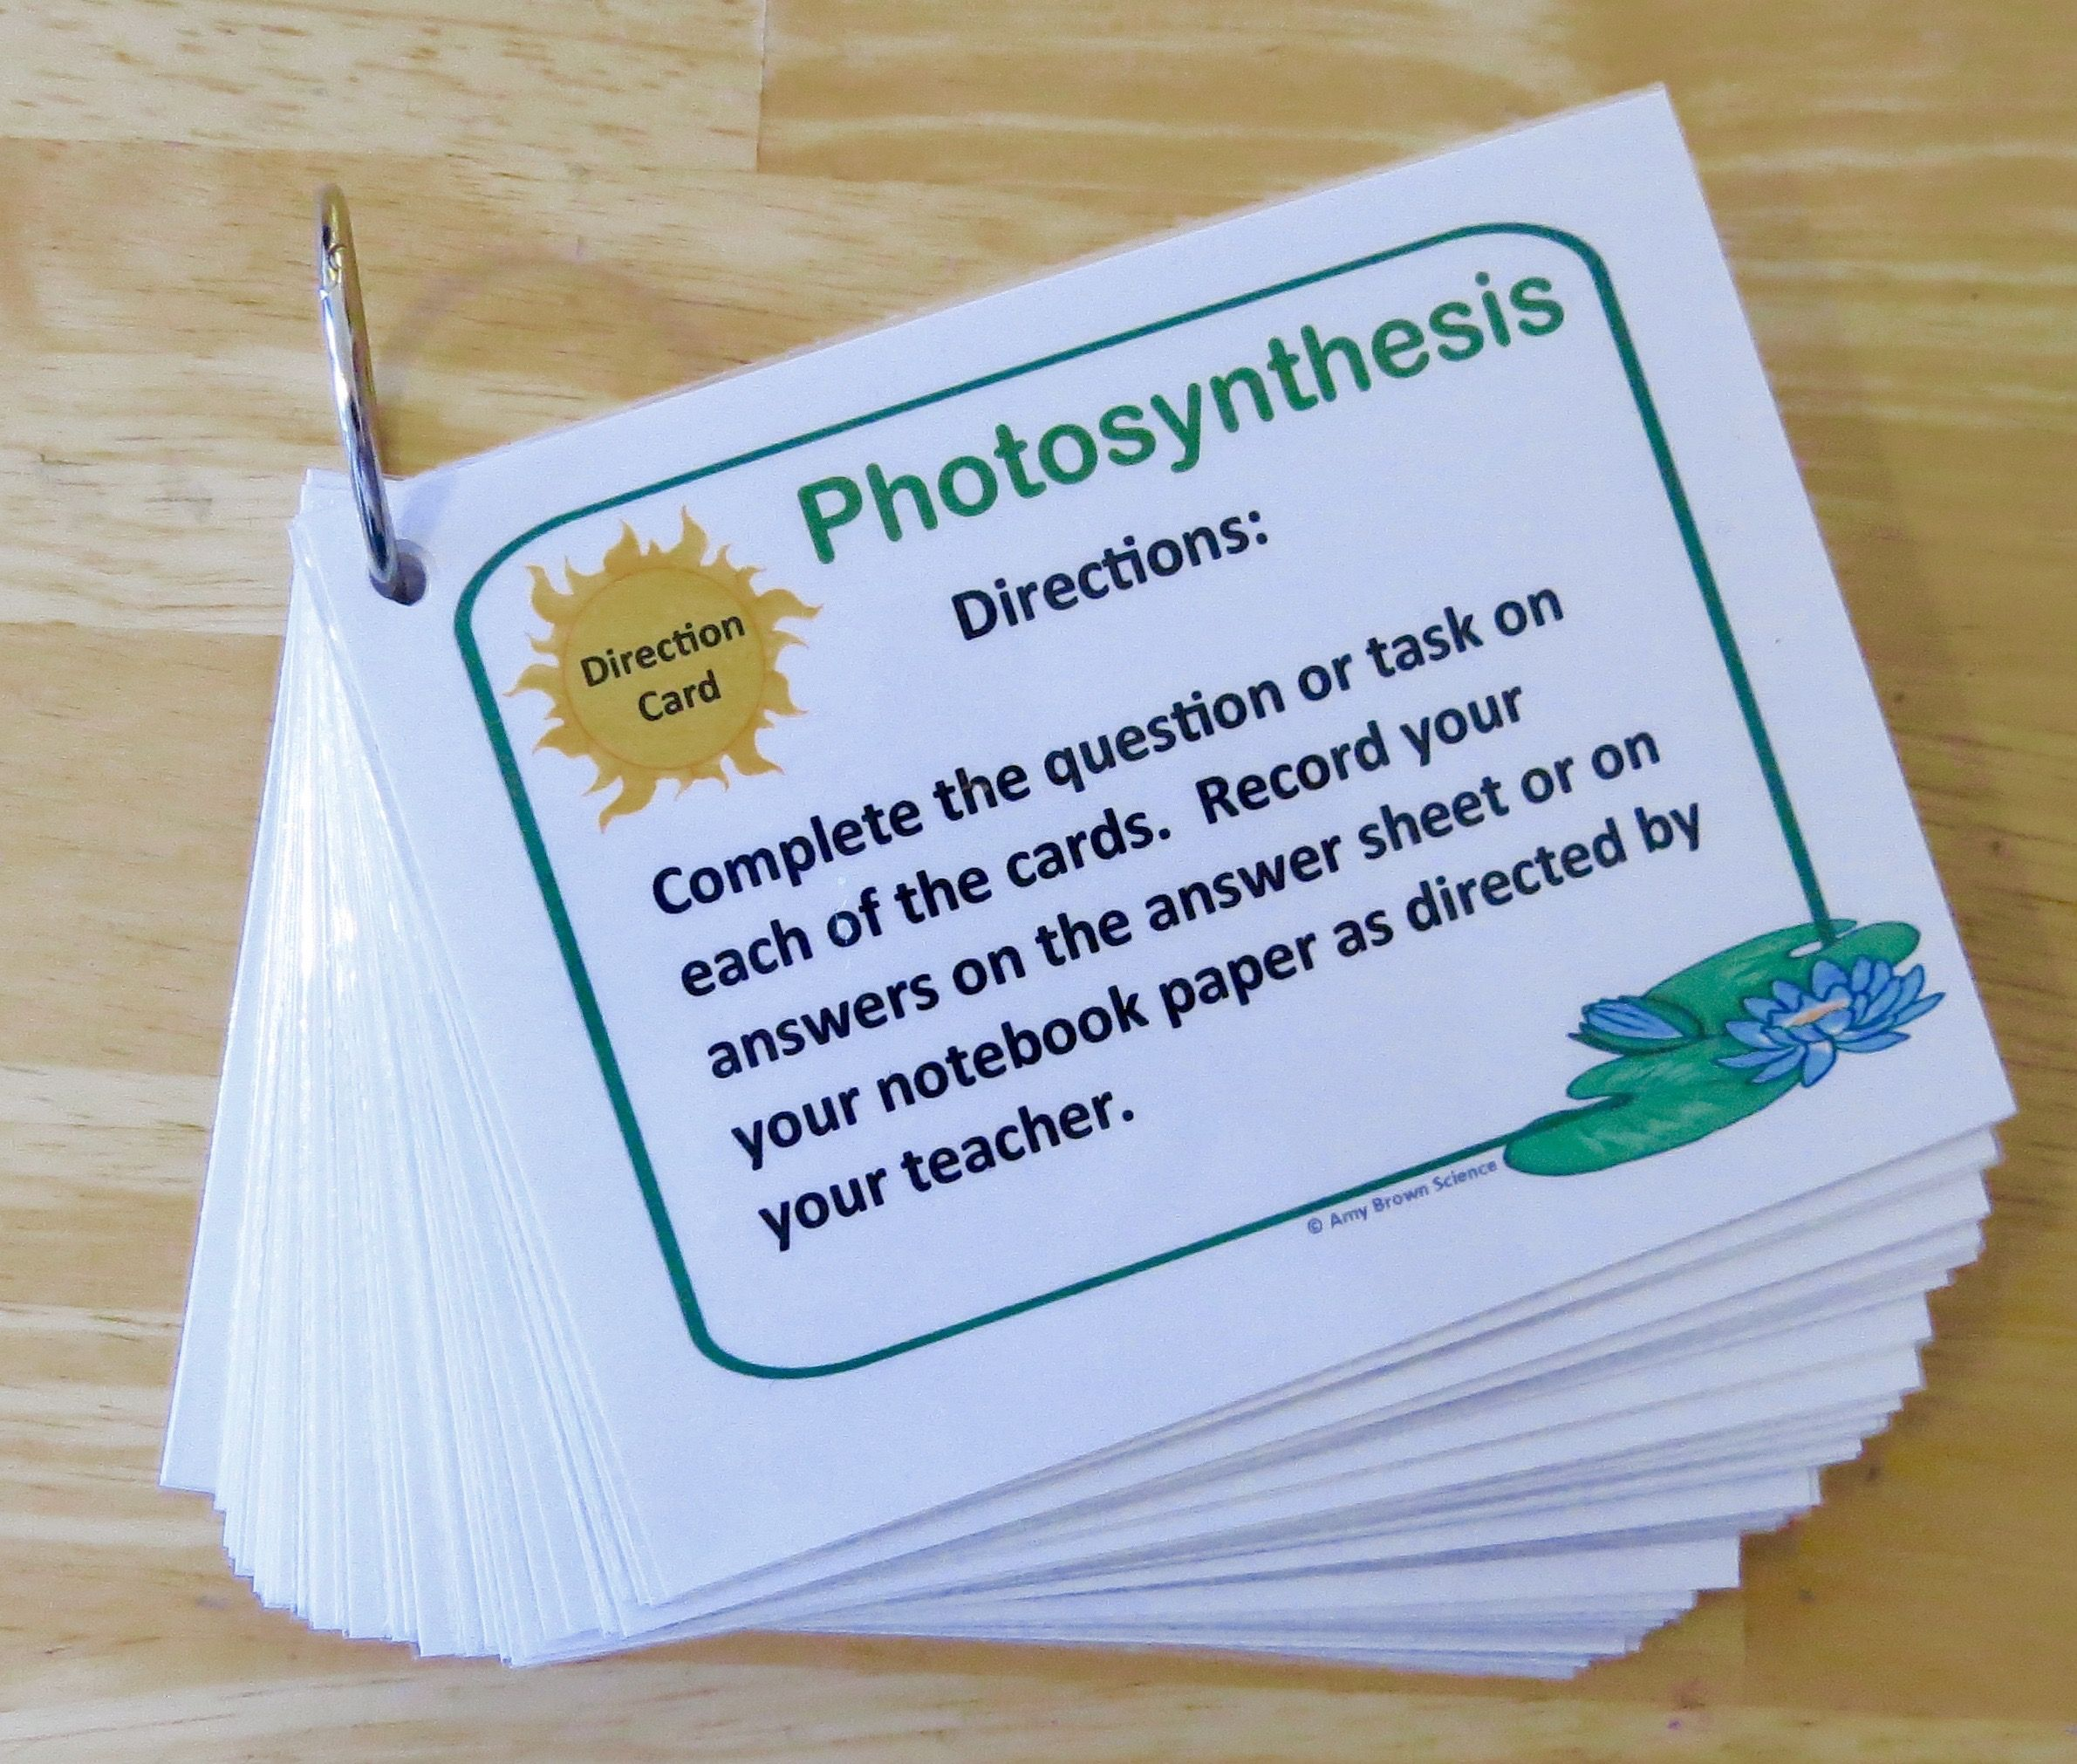 Photosynthesis Task Cards Increase Mastery Of The Information With These 60 Task Cards Photosynthesis Task Cards Biology Classroom